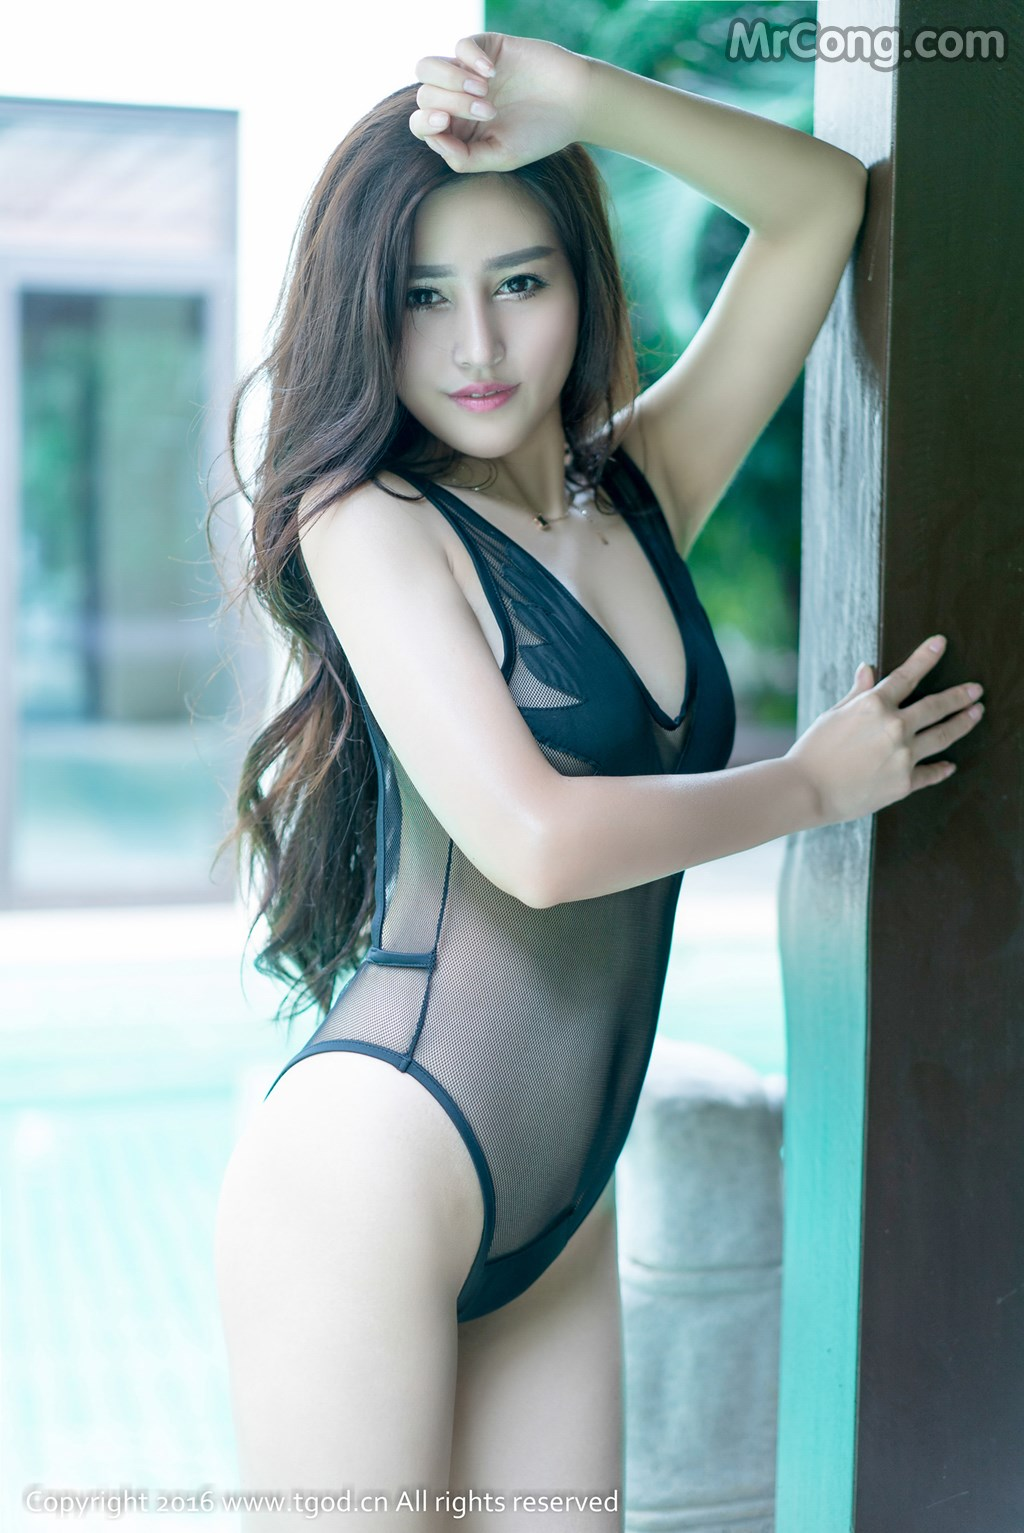 TGOD 2016-03-22: Model Wang Pei Ni (汪佩妮Penny) (16P)